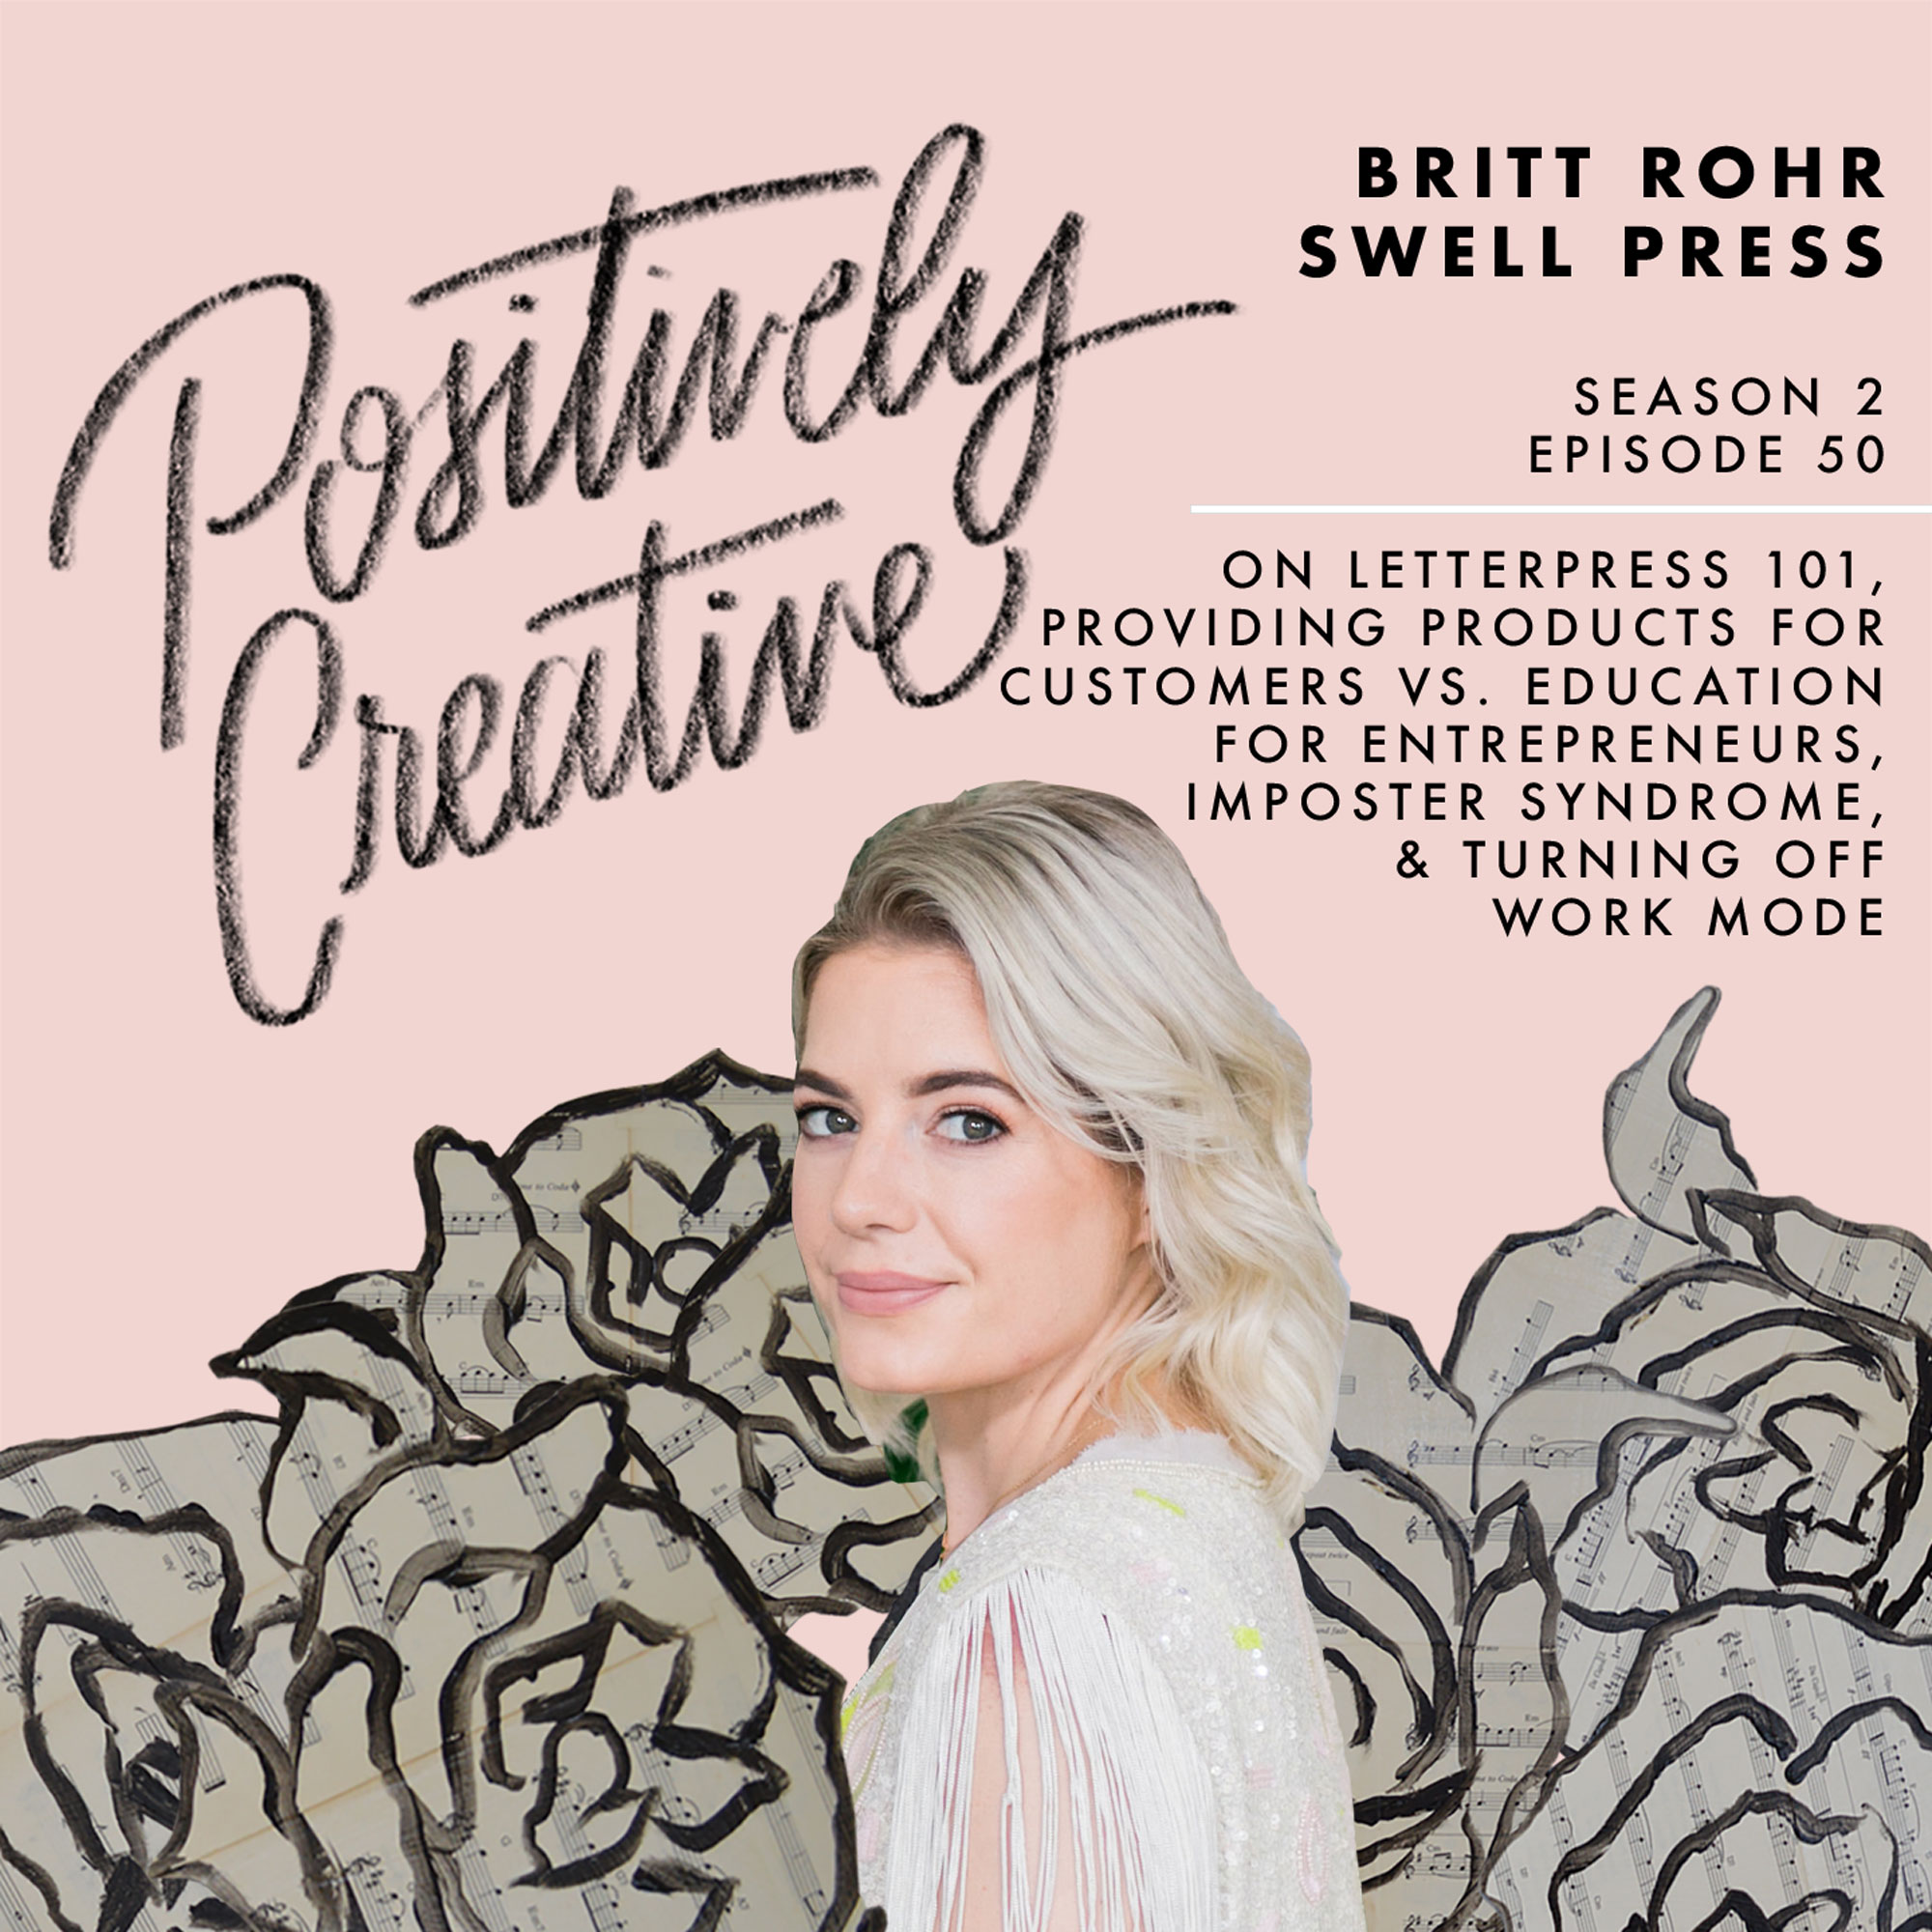 S2-Ep-50---Britt-Rohr,-Swell-Press-on-Letterpress-101,-Providing-Products-for-Customers-vs.-Education-for-Entrepreneurs,-Imposter-Syndrome,-&-Turning-Off-Work-Mode.jpg